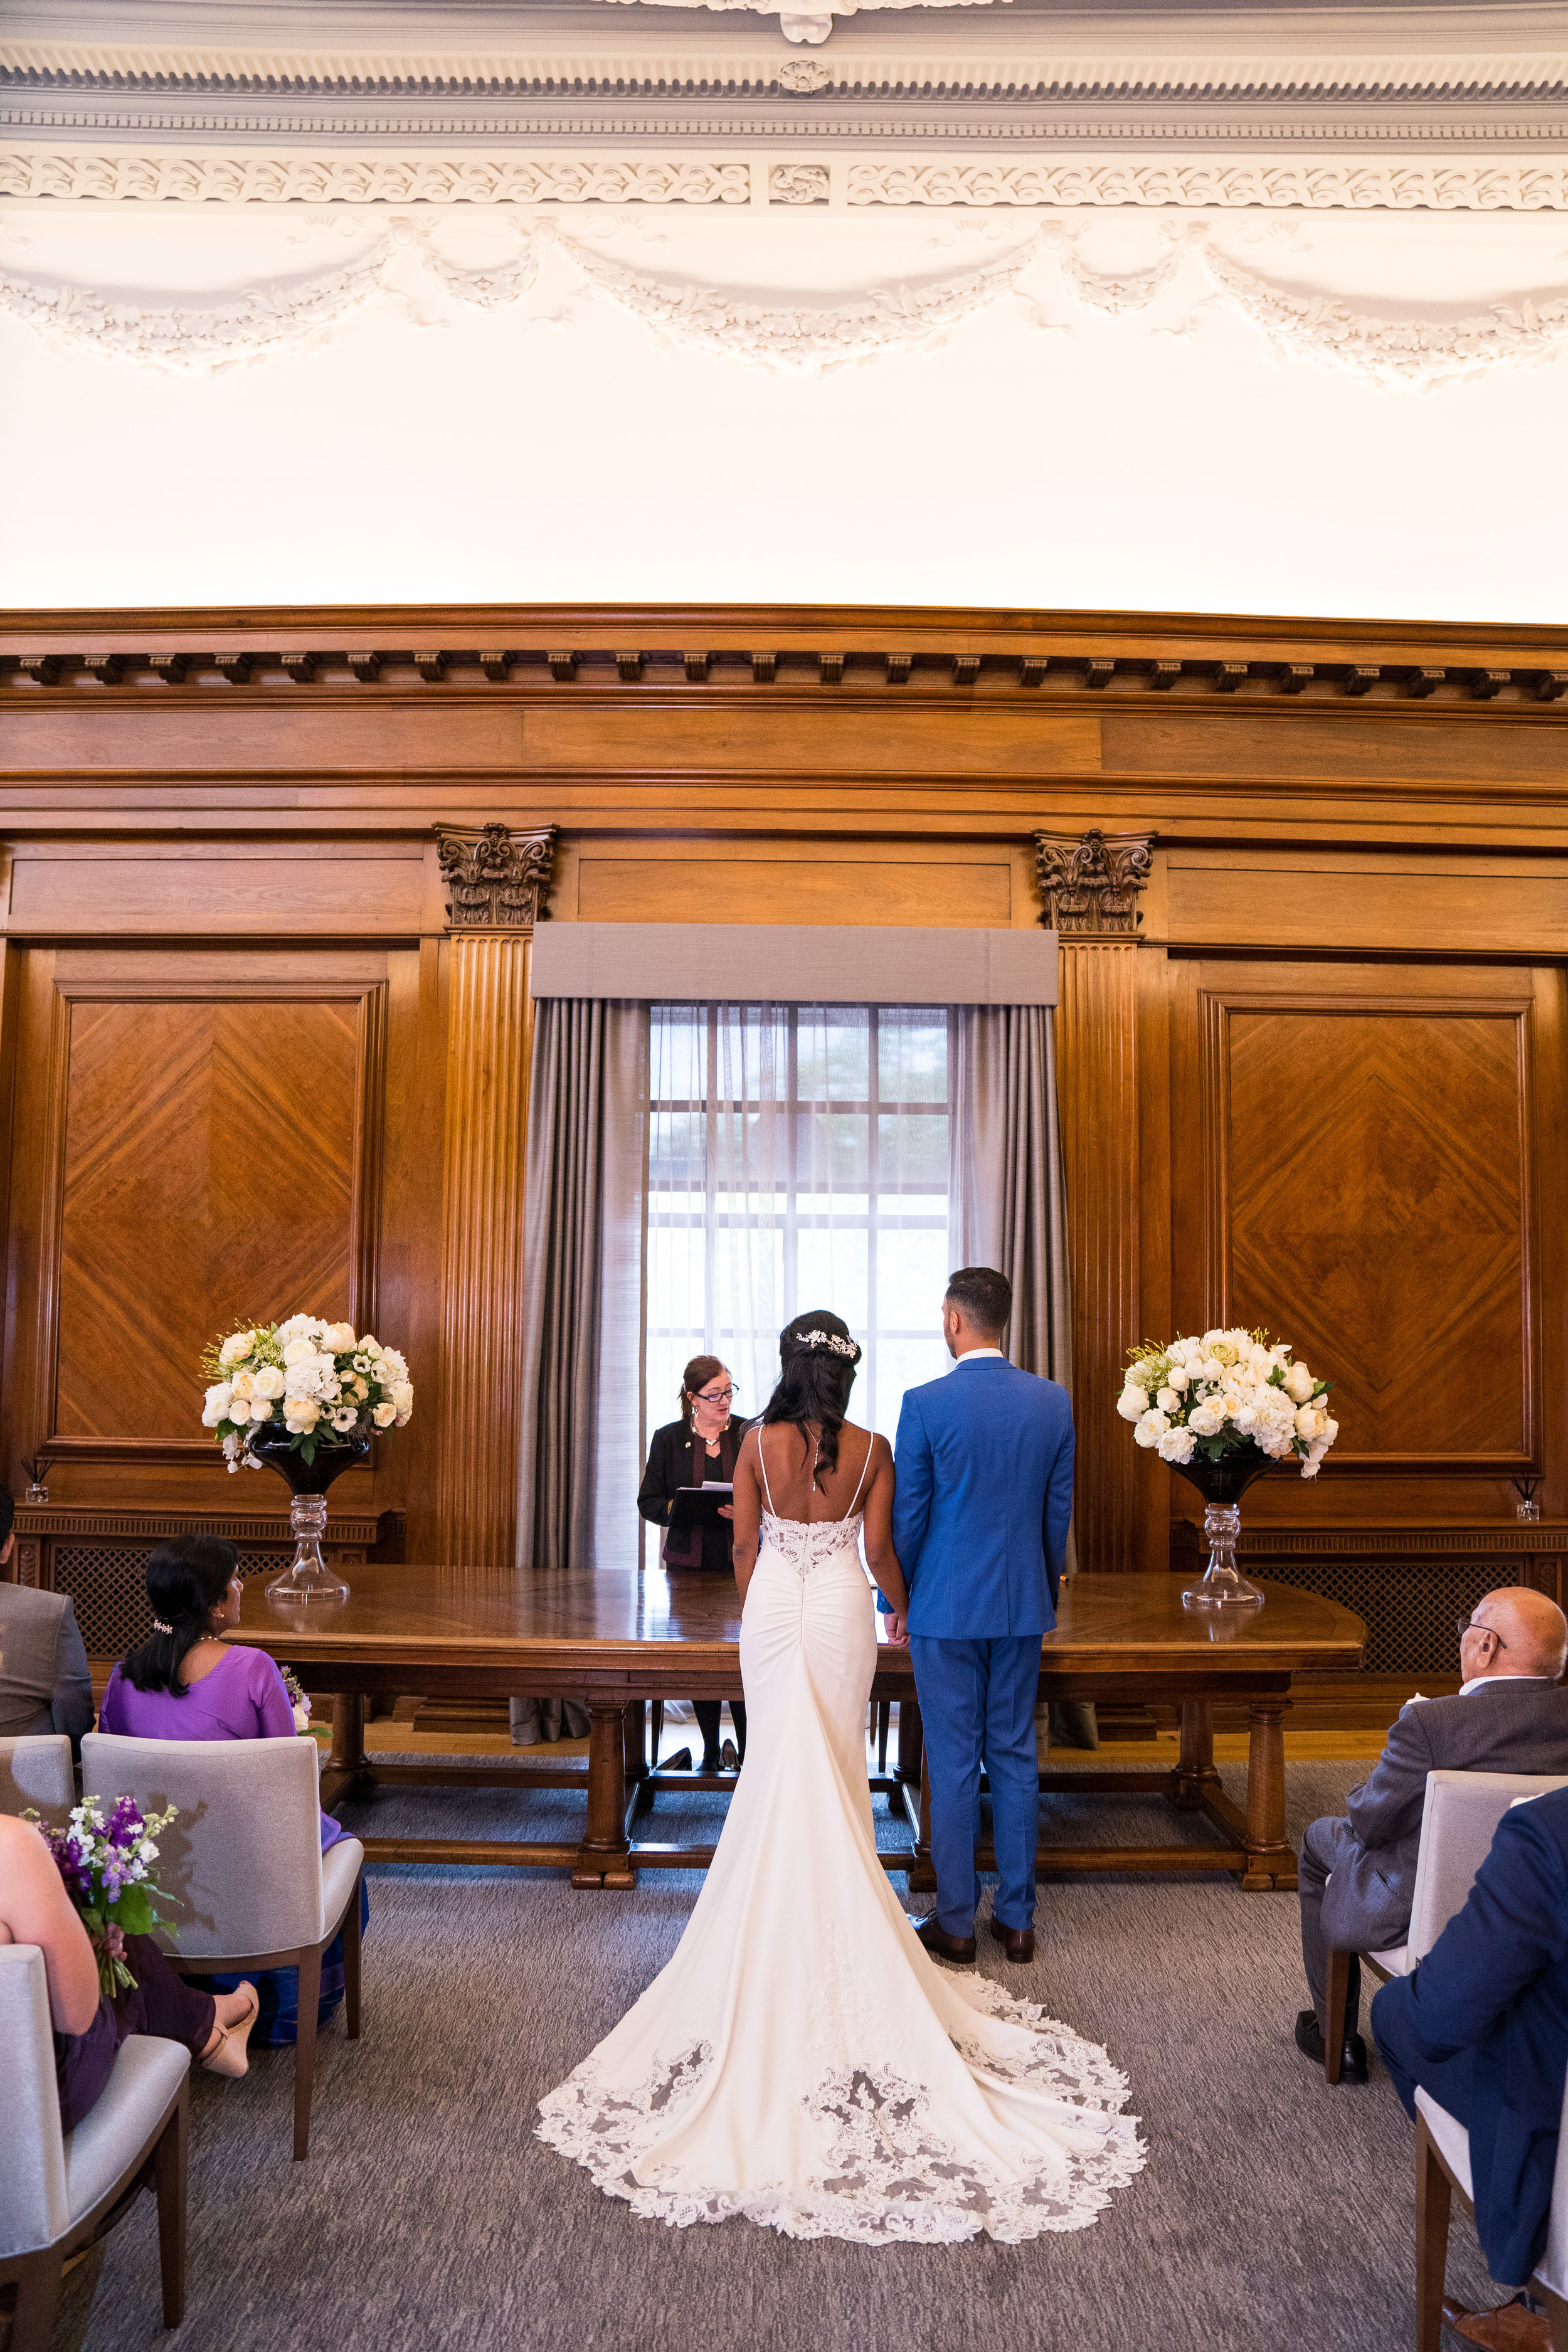 anglo-asian-hindu-civil-wedding-photography-videography-london-portrait-marylebone-old-town-hall-26